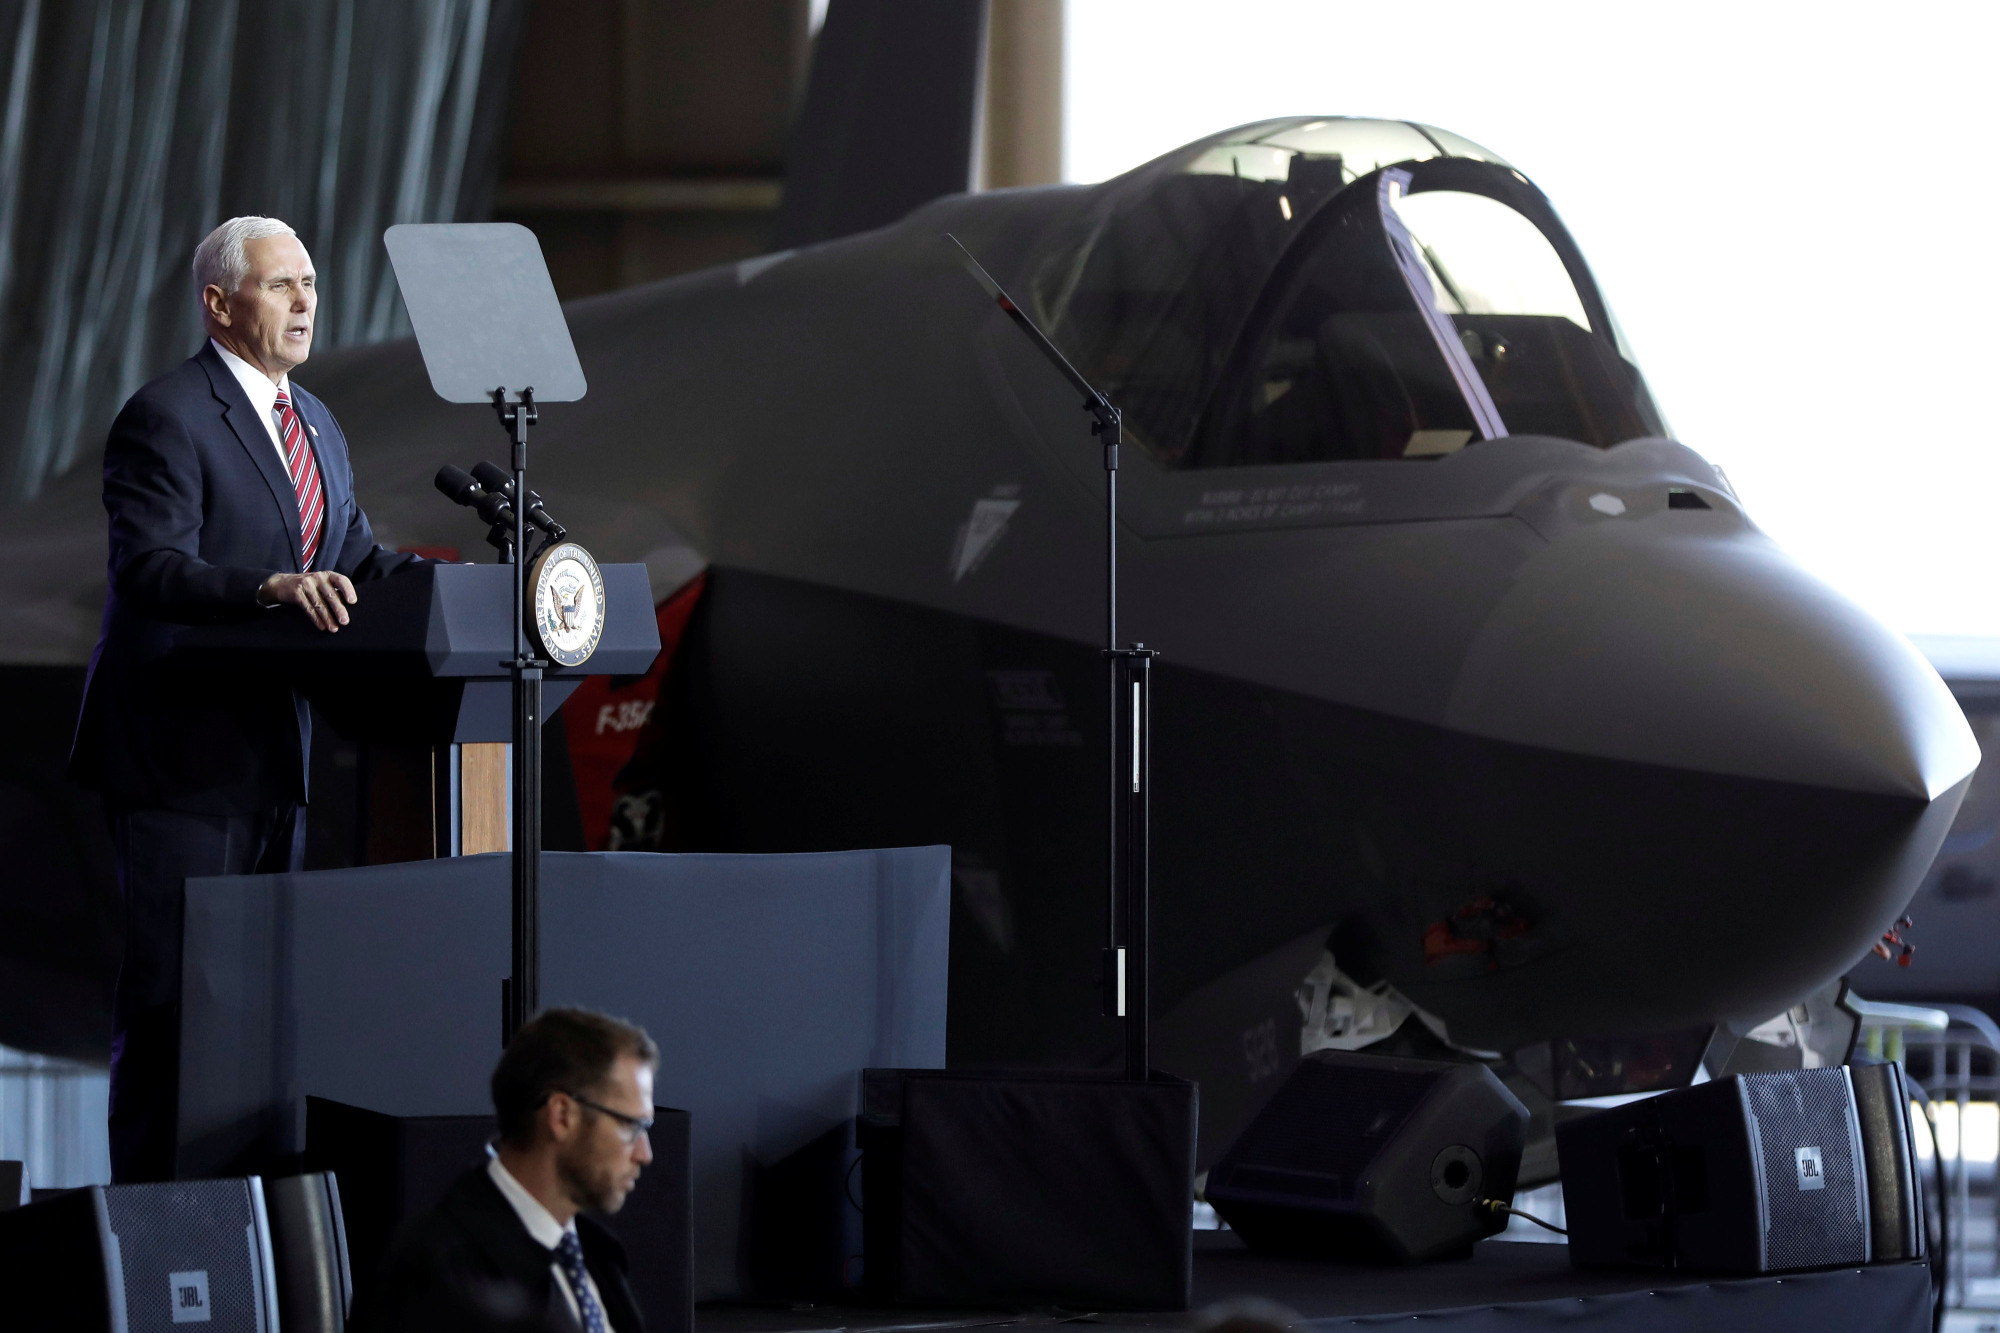 U.S. Vice President Mike Pence speaks to members of the U.S. military and the Self-Defense Forces in front of a U.S. Air Force F-35 fighter at Yokota Airbase in Fussa, Tokyo, in February 2018. | REUTERS